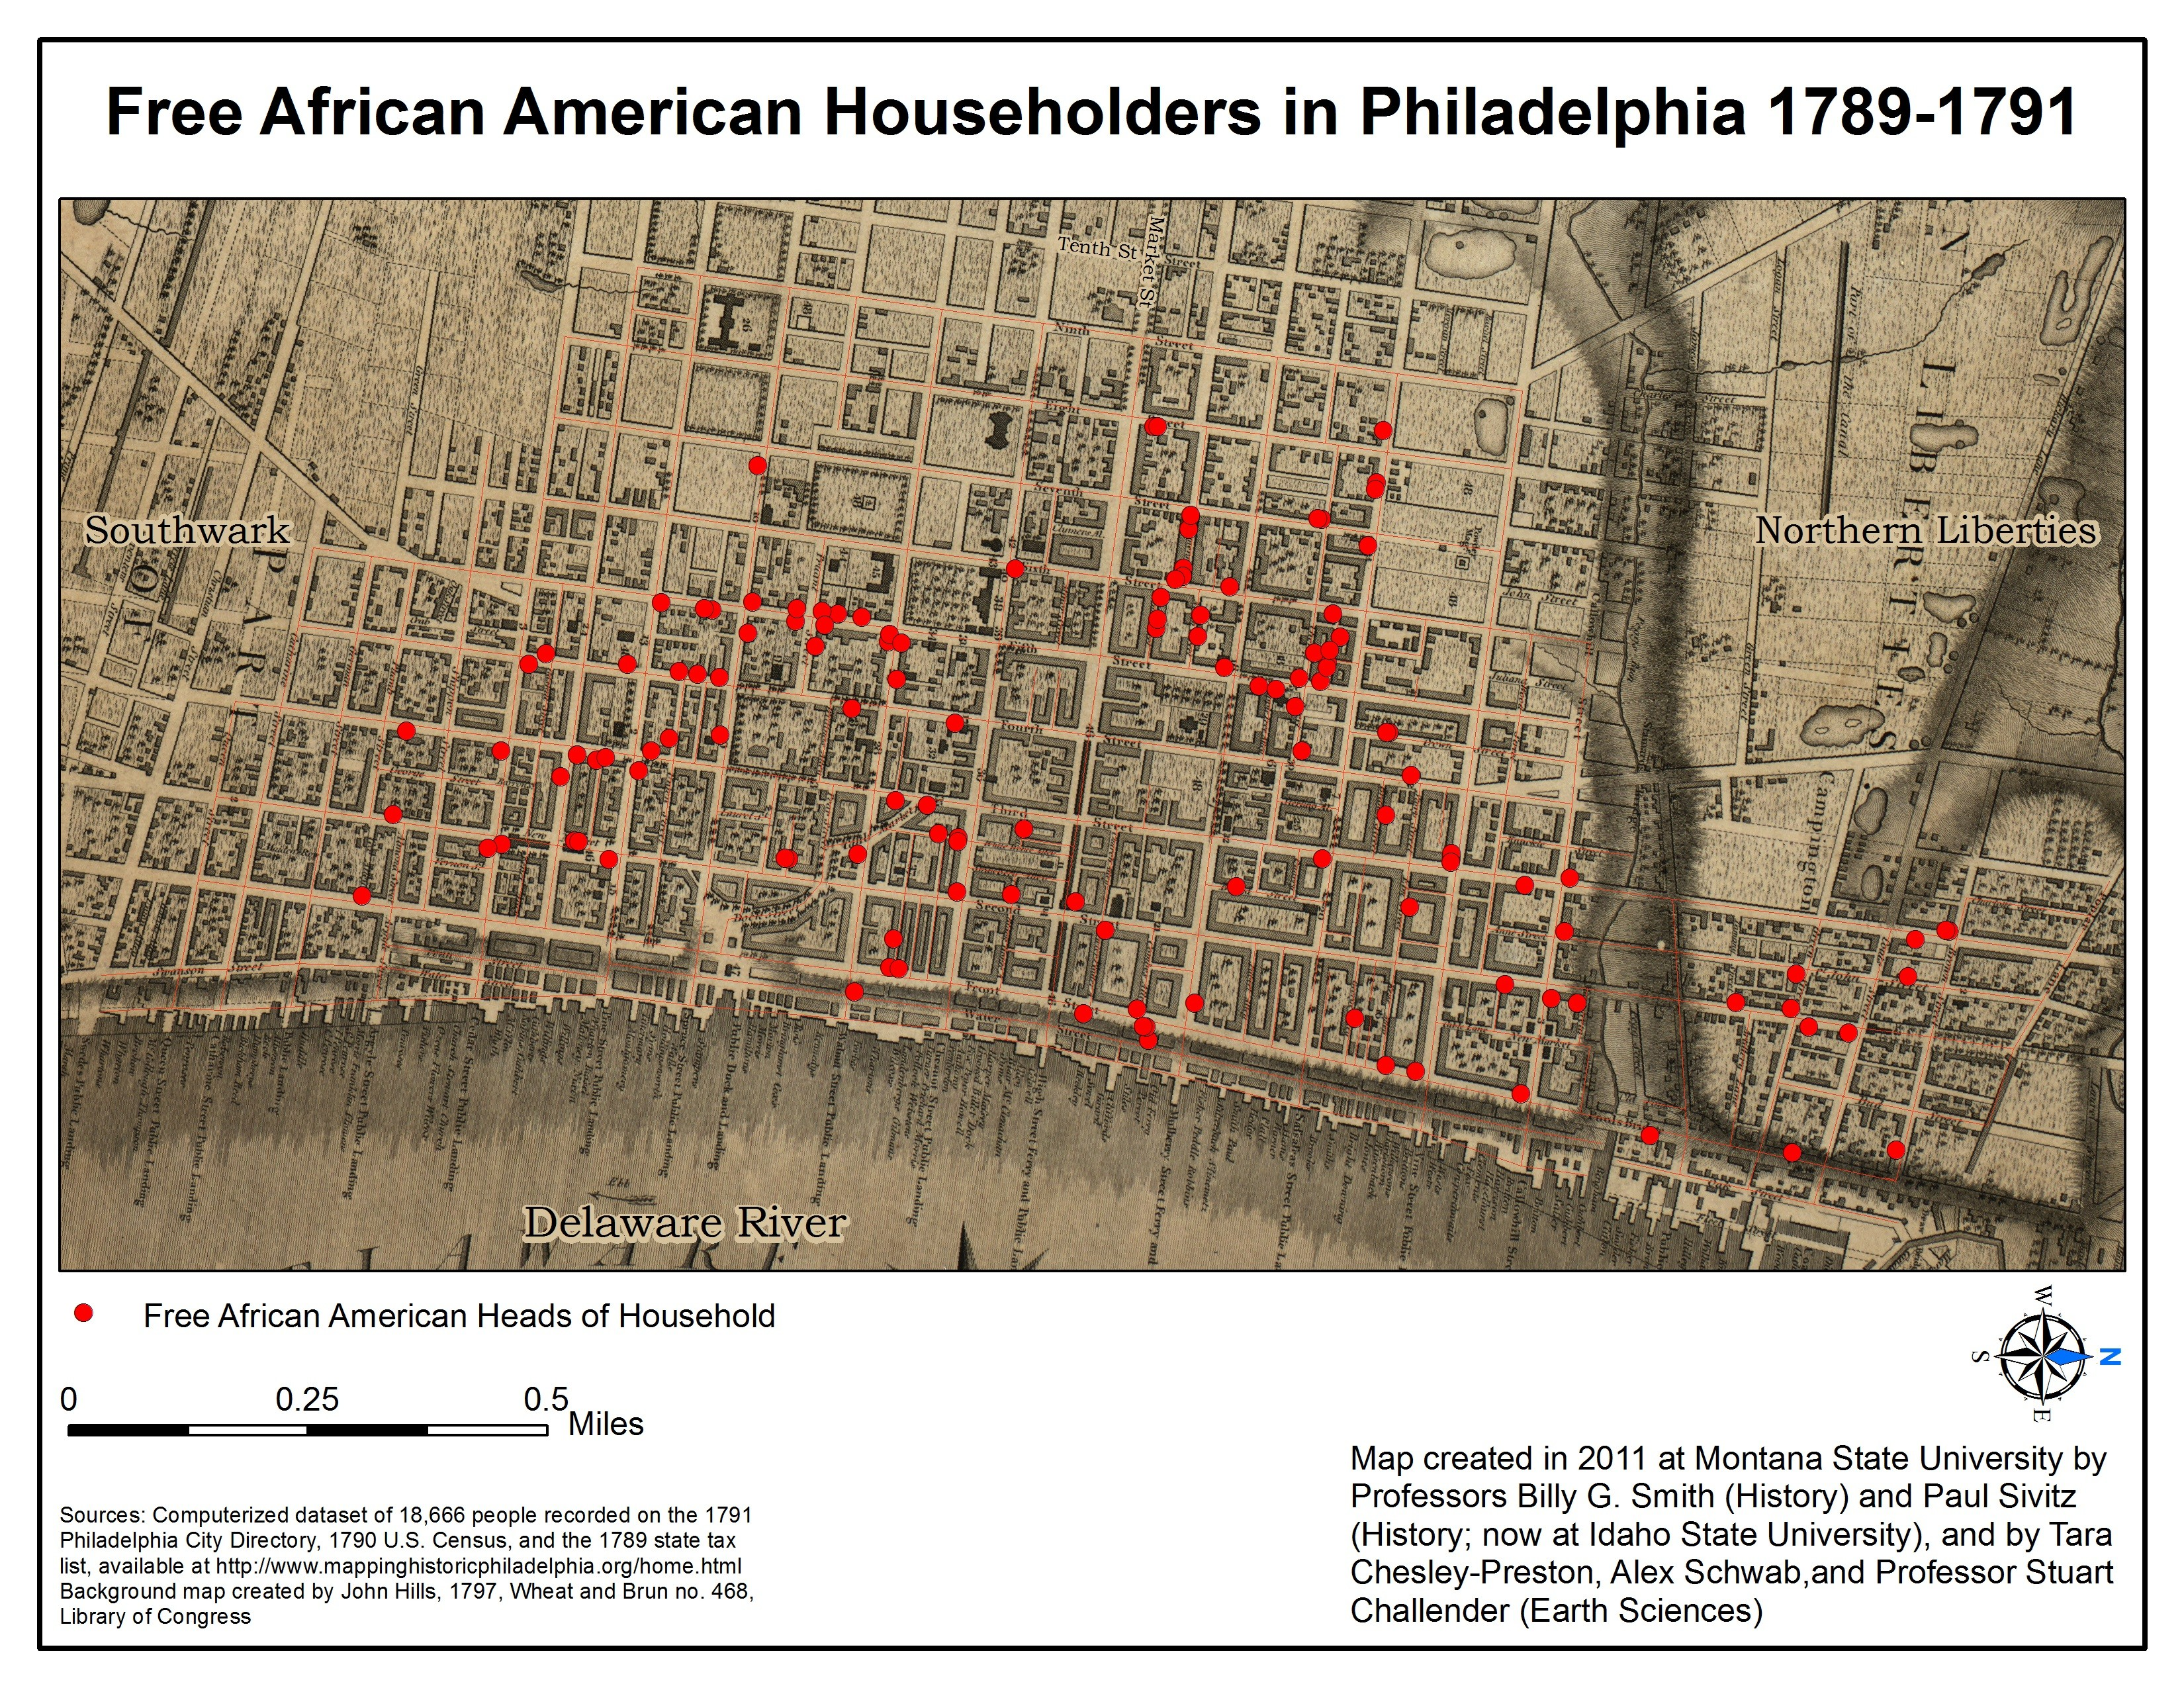 18th century map of Philadelphia with red dots